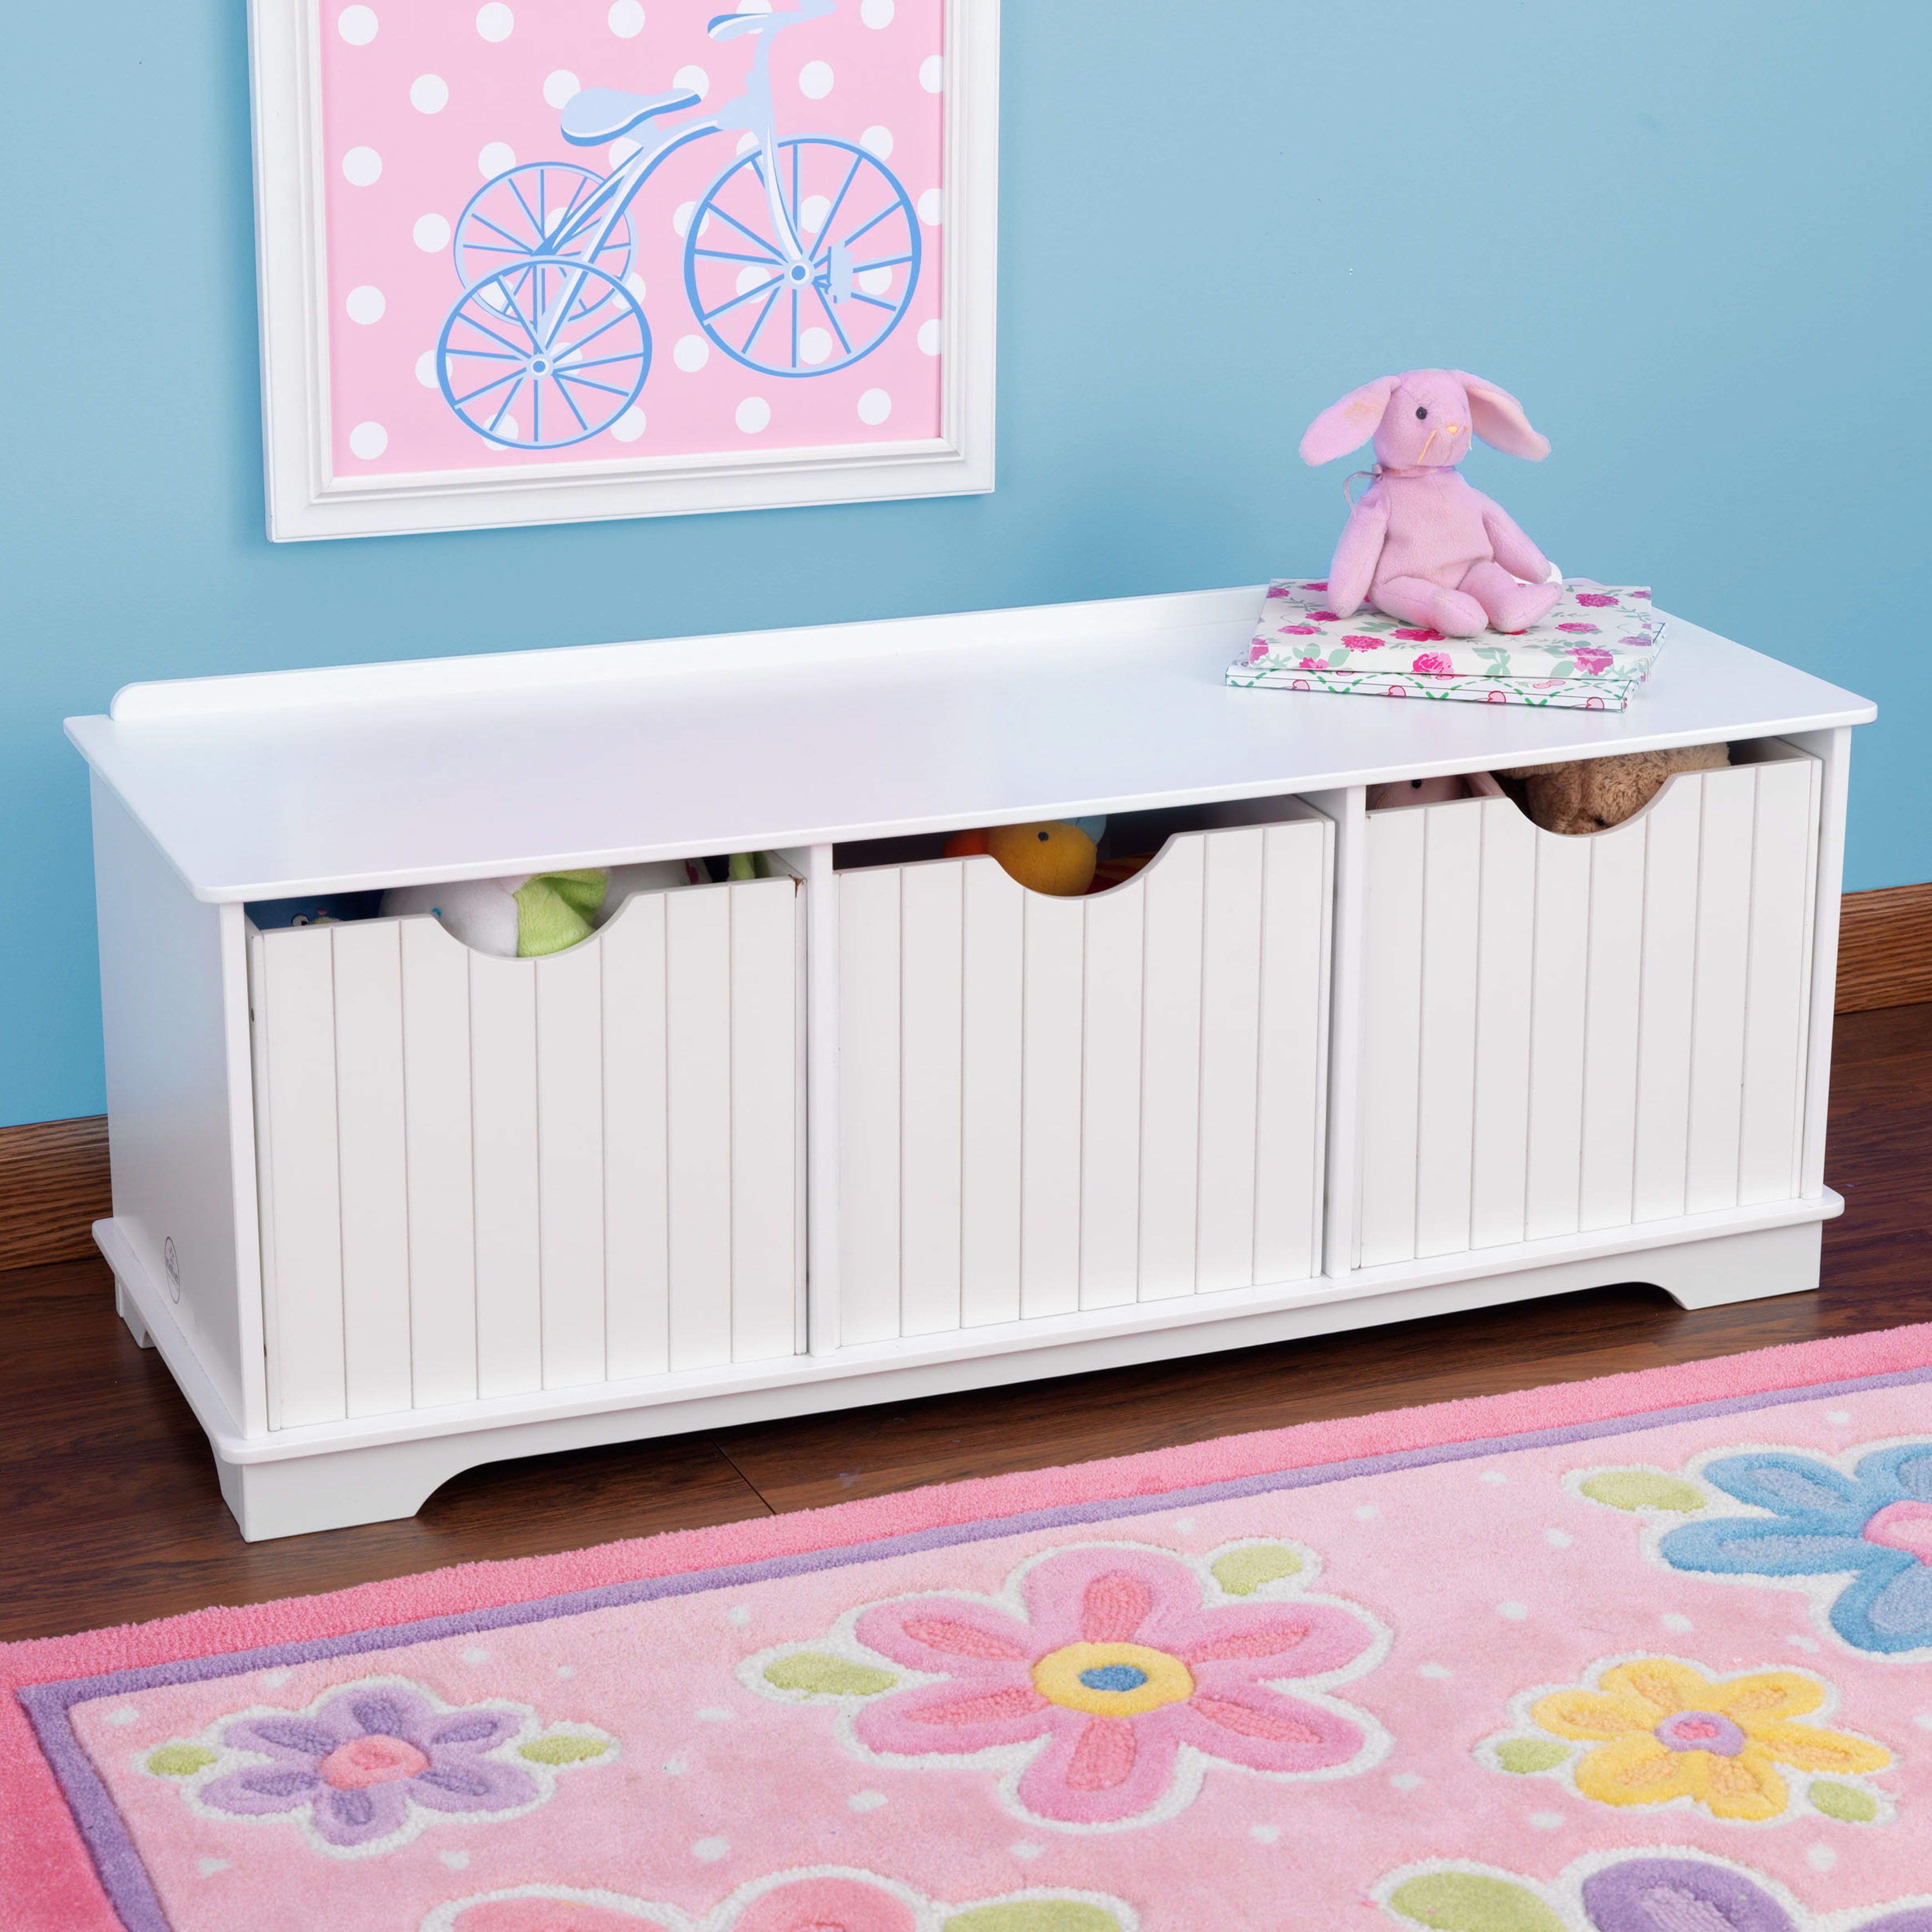 Kids Storage Bench Furniture Toy Box Bedroom Playroom: Children's Toys In South